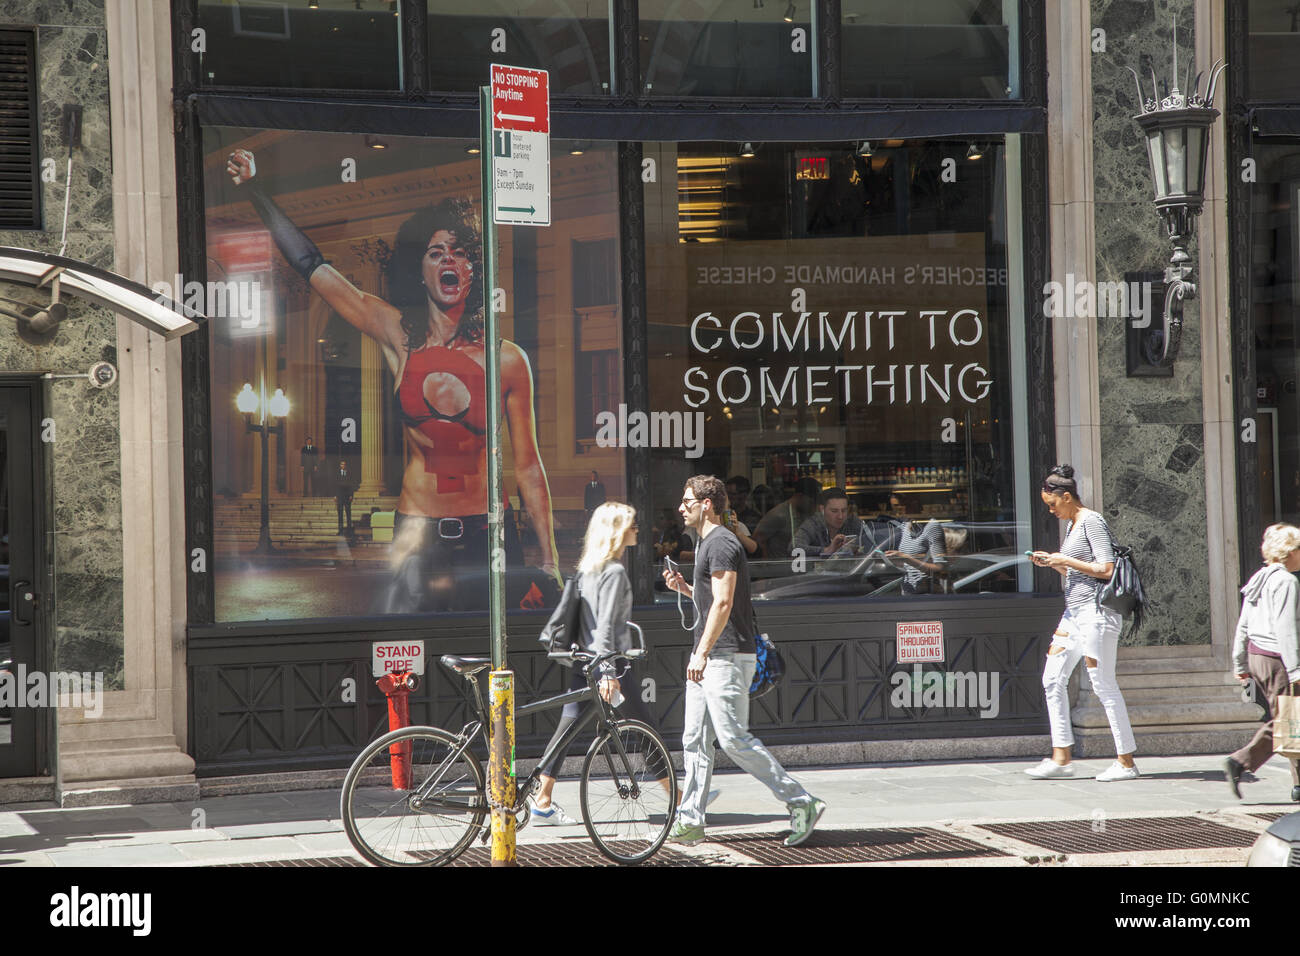 Commit To Something, catchy, image, Equinox, advertising